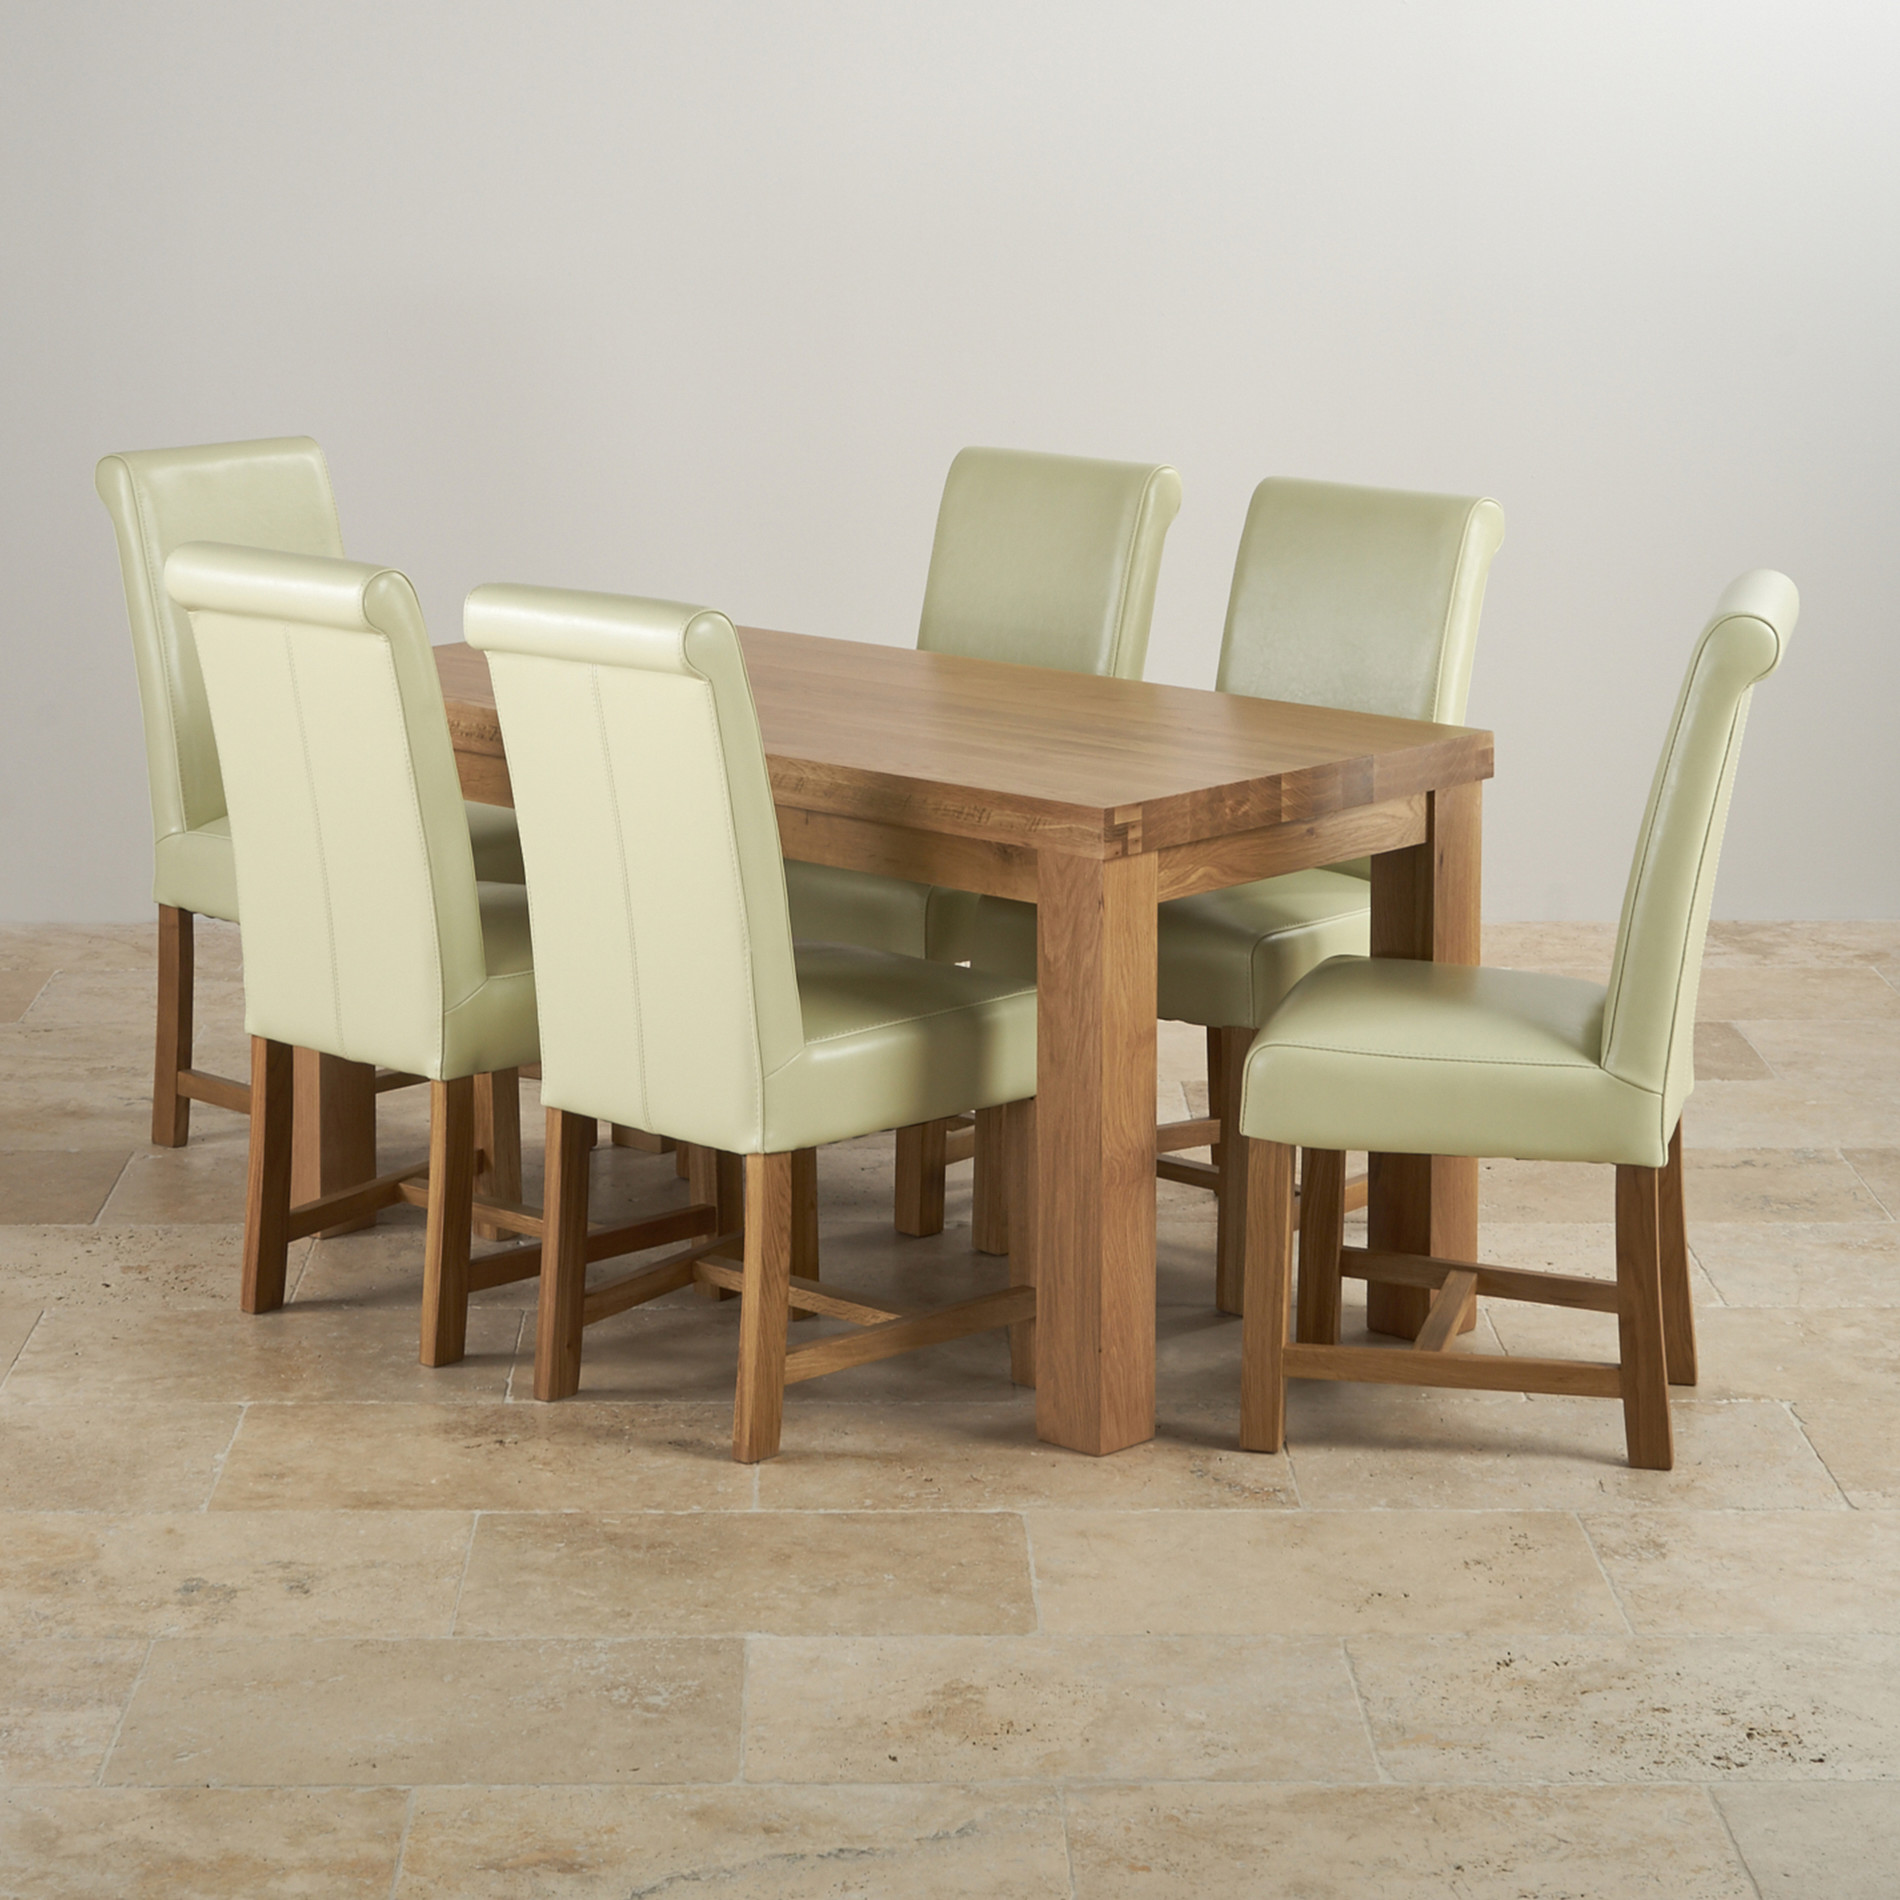 Fresco 5ft solid oak dining table 6 cream leather chairs for 5 chair dining table